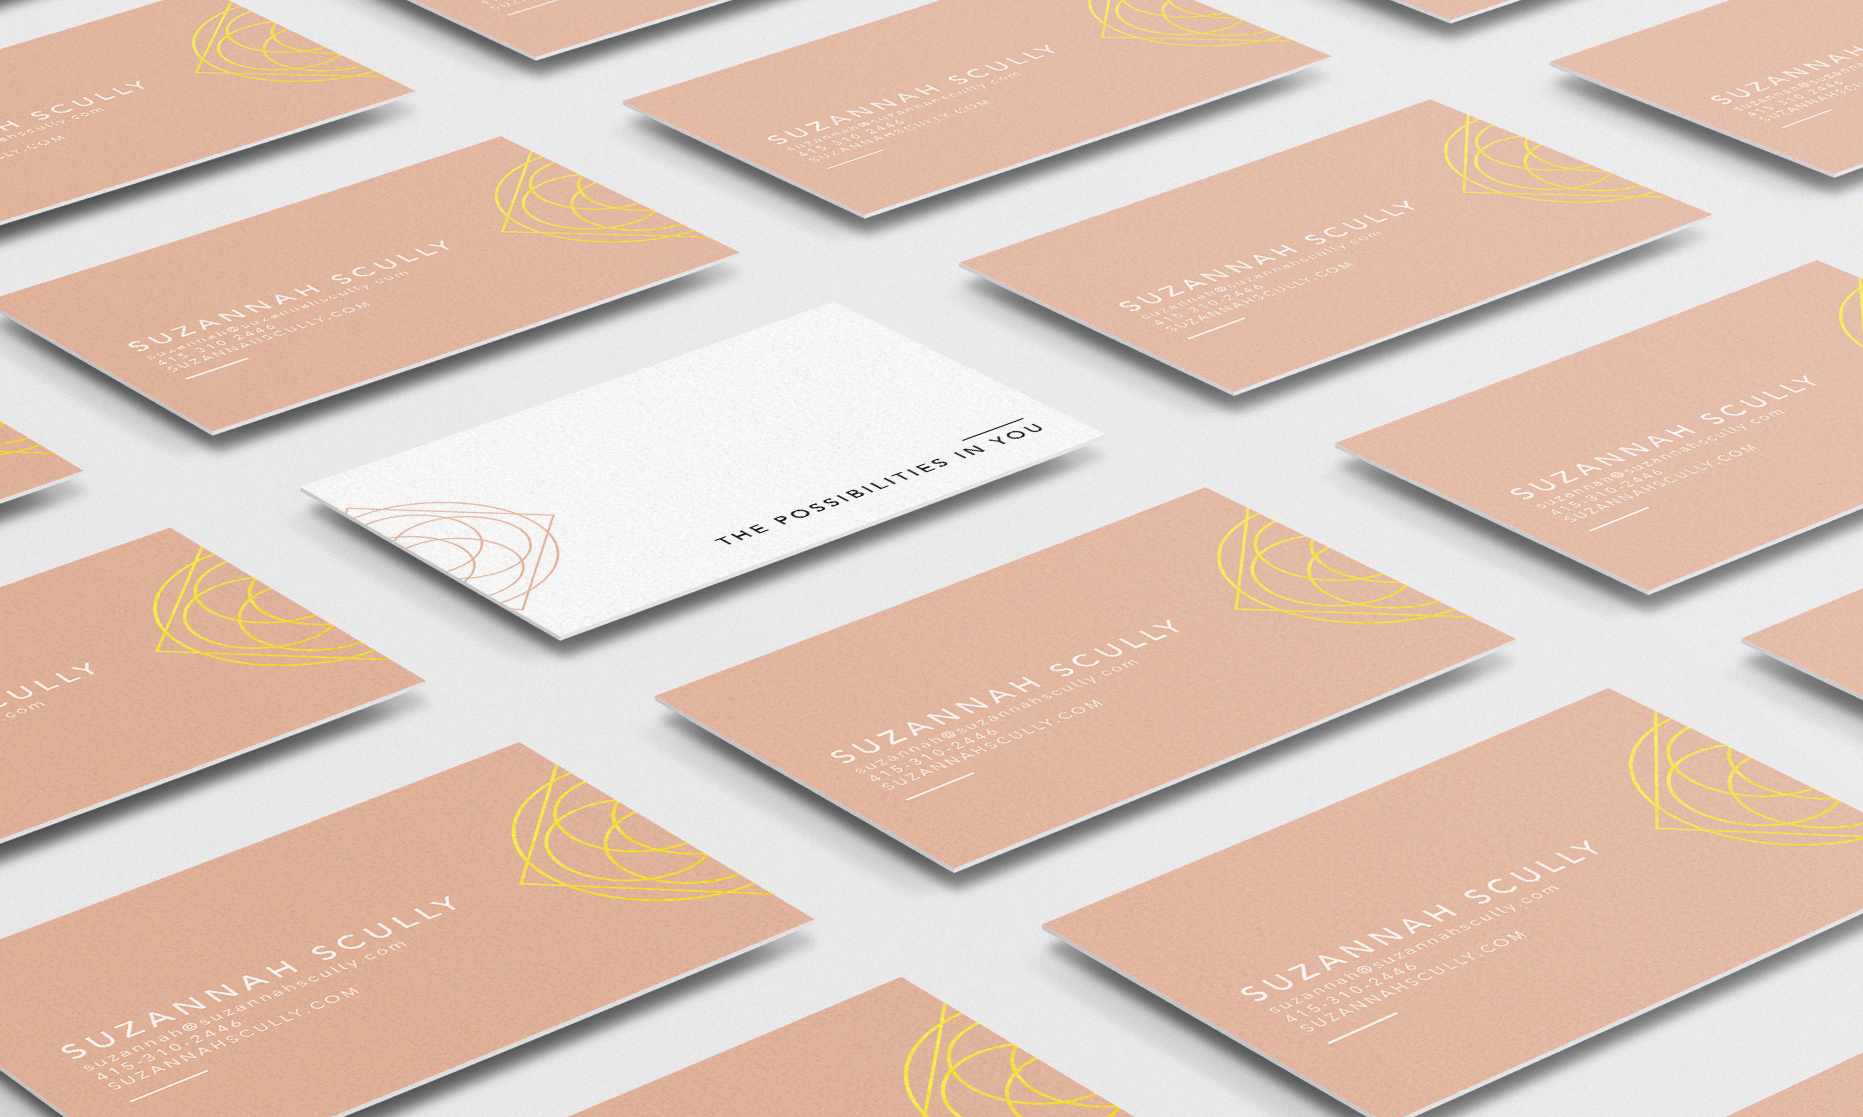 Speaker Brand Identity Design Business Cards